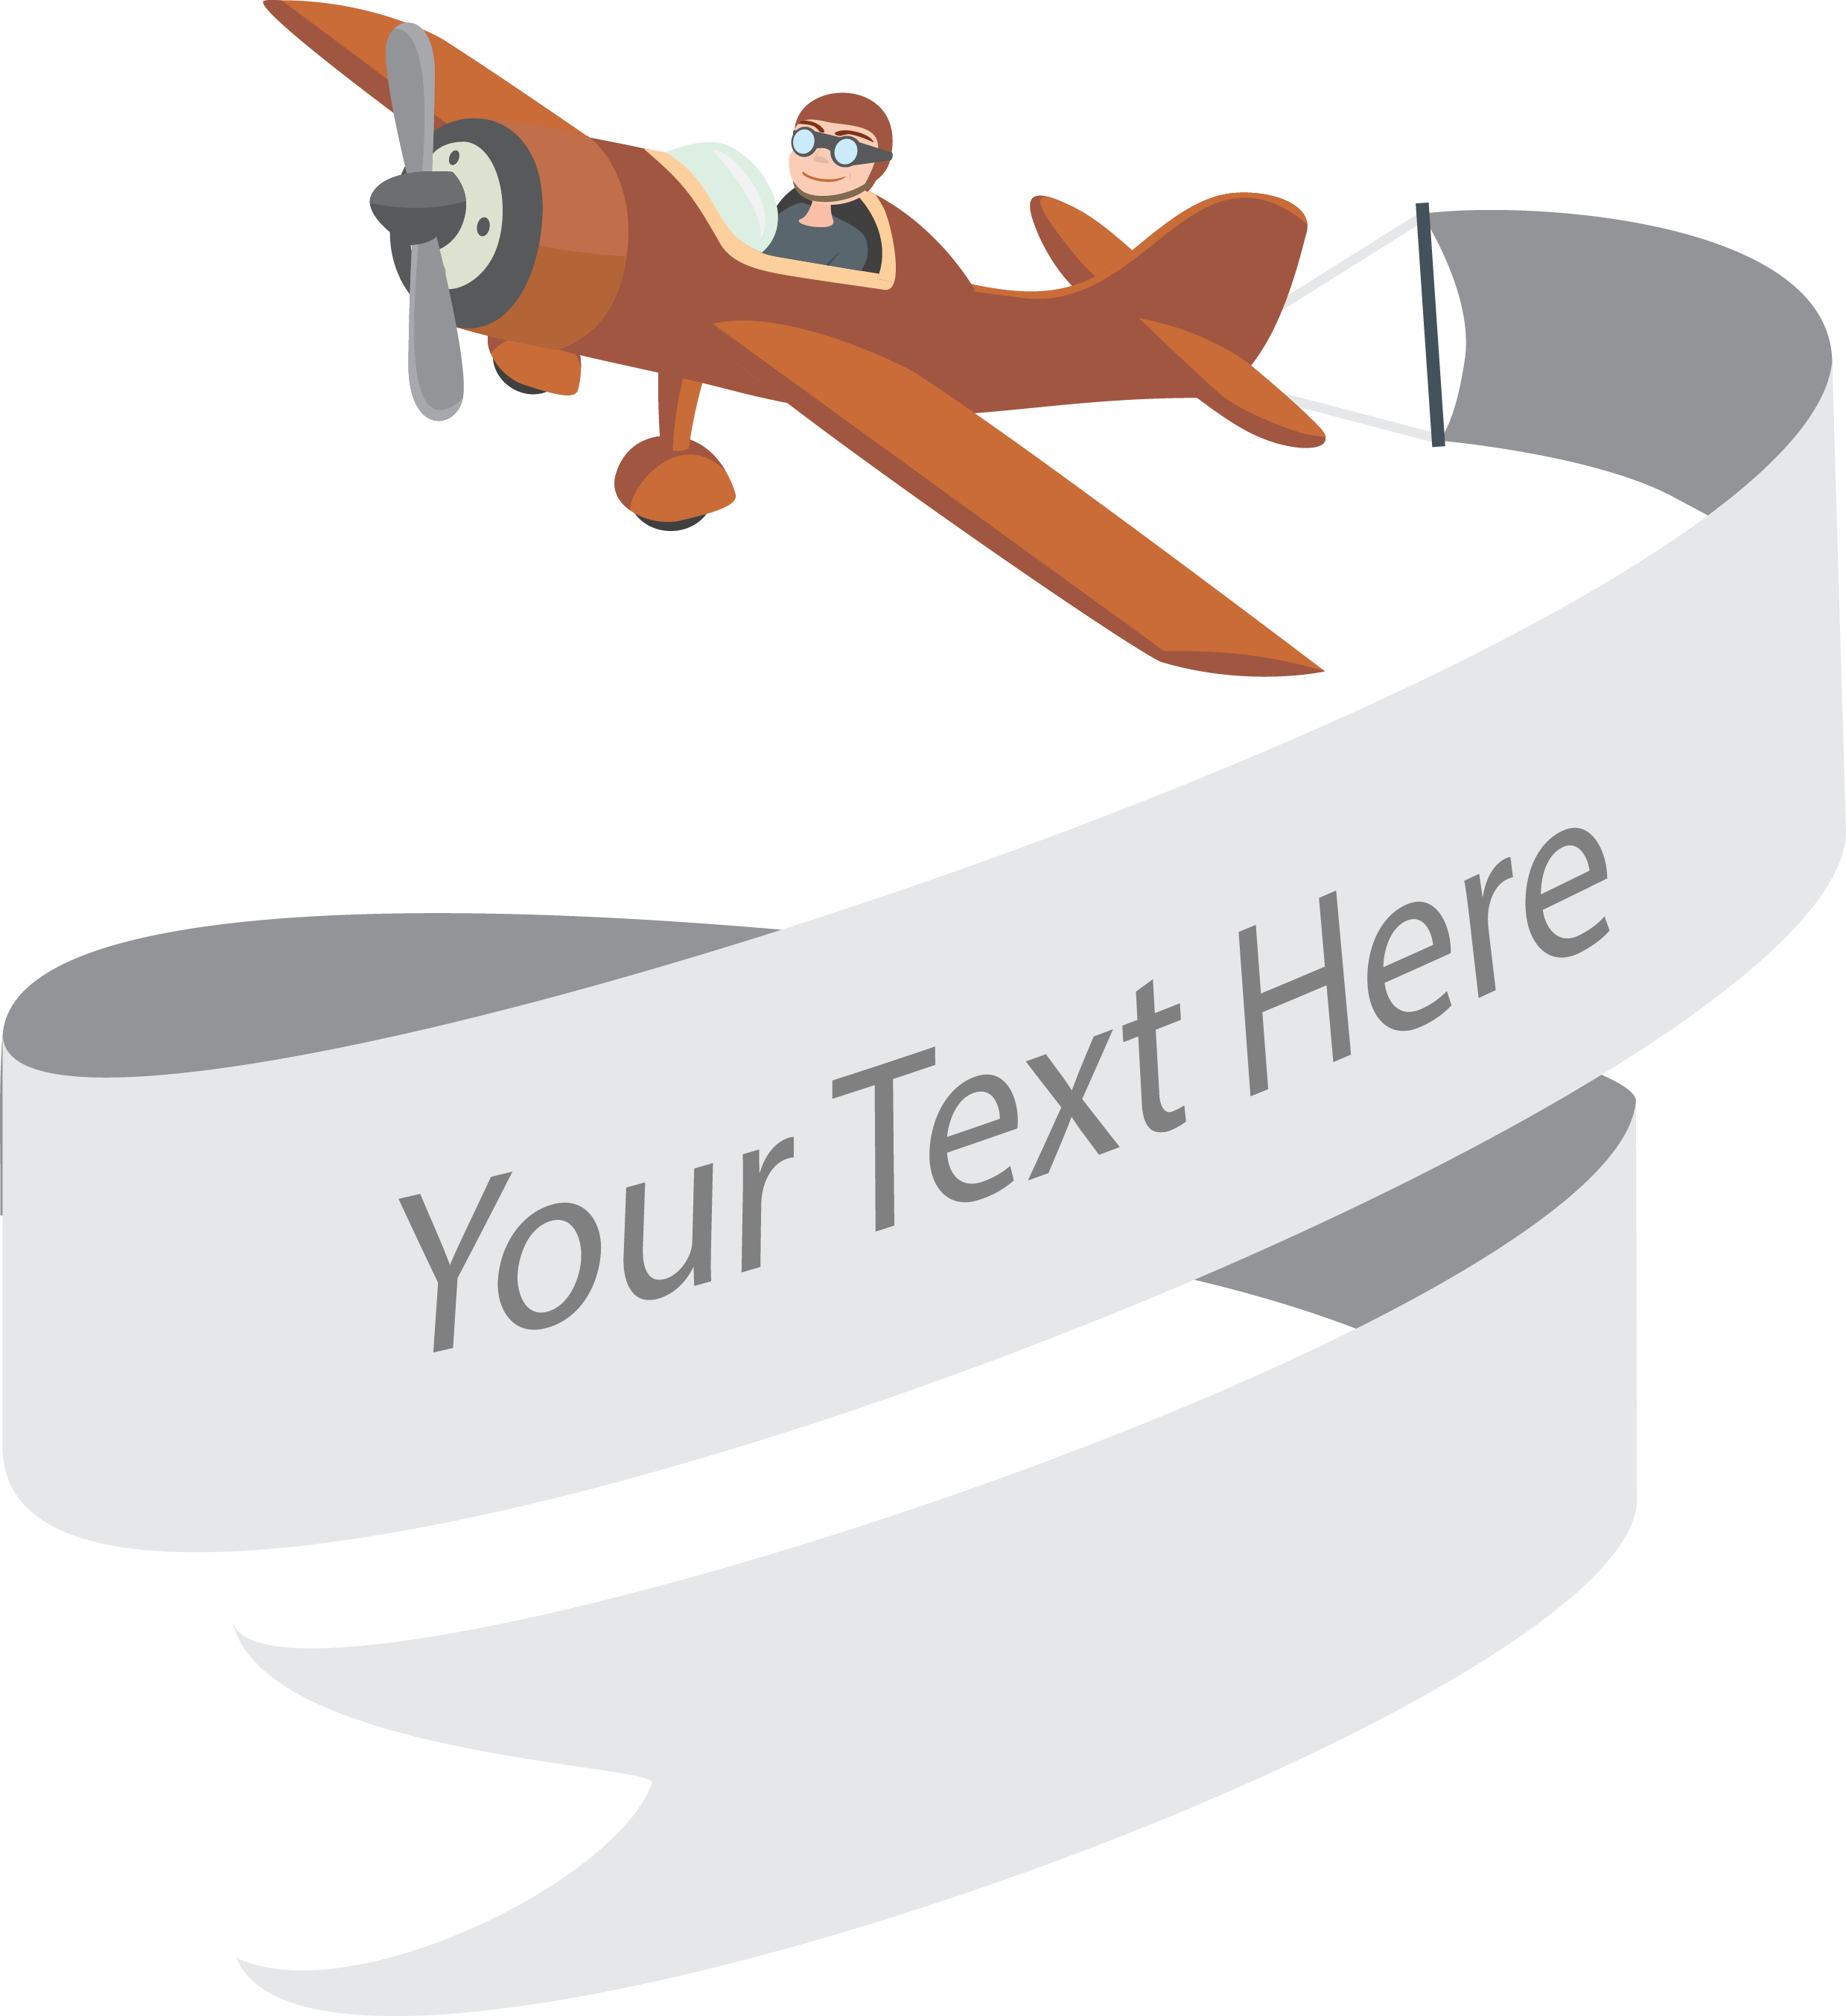 Airplane with banner png. Web company cartoon pilot